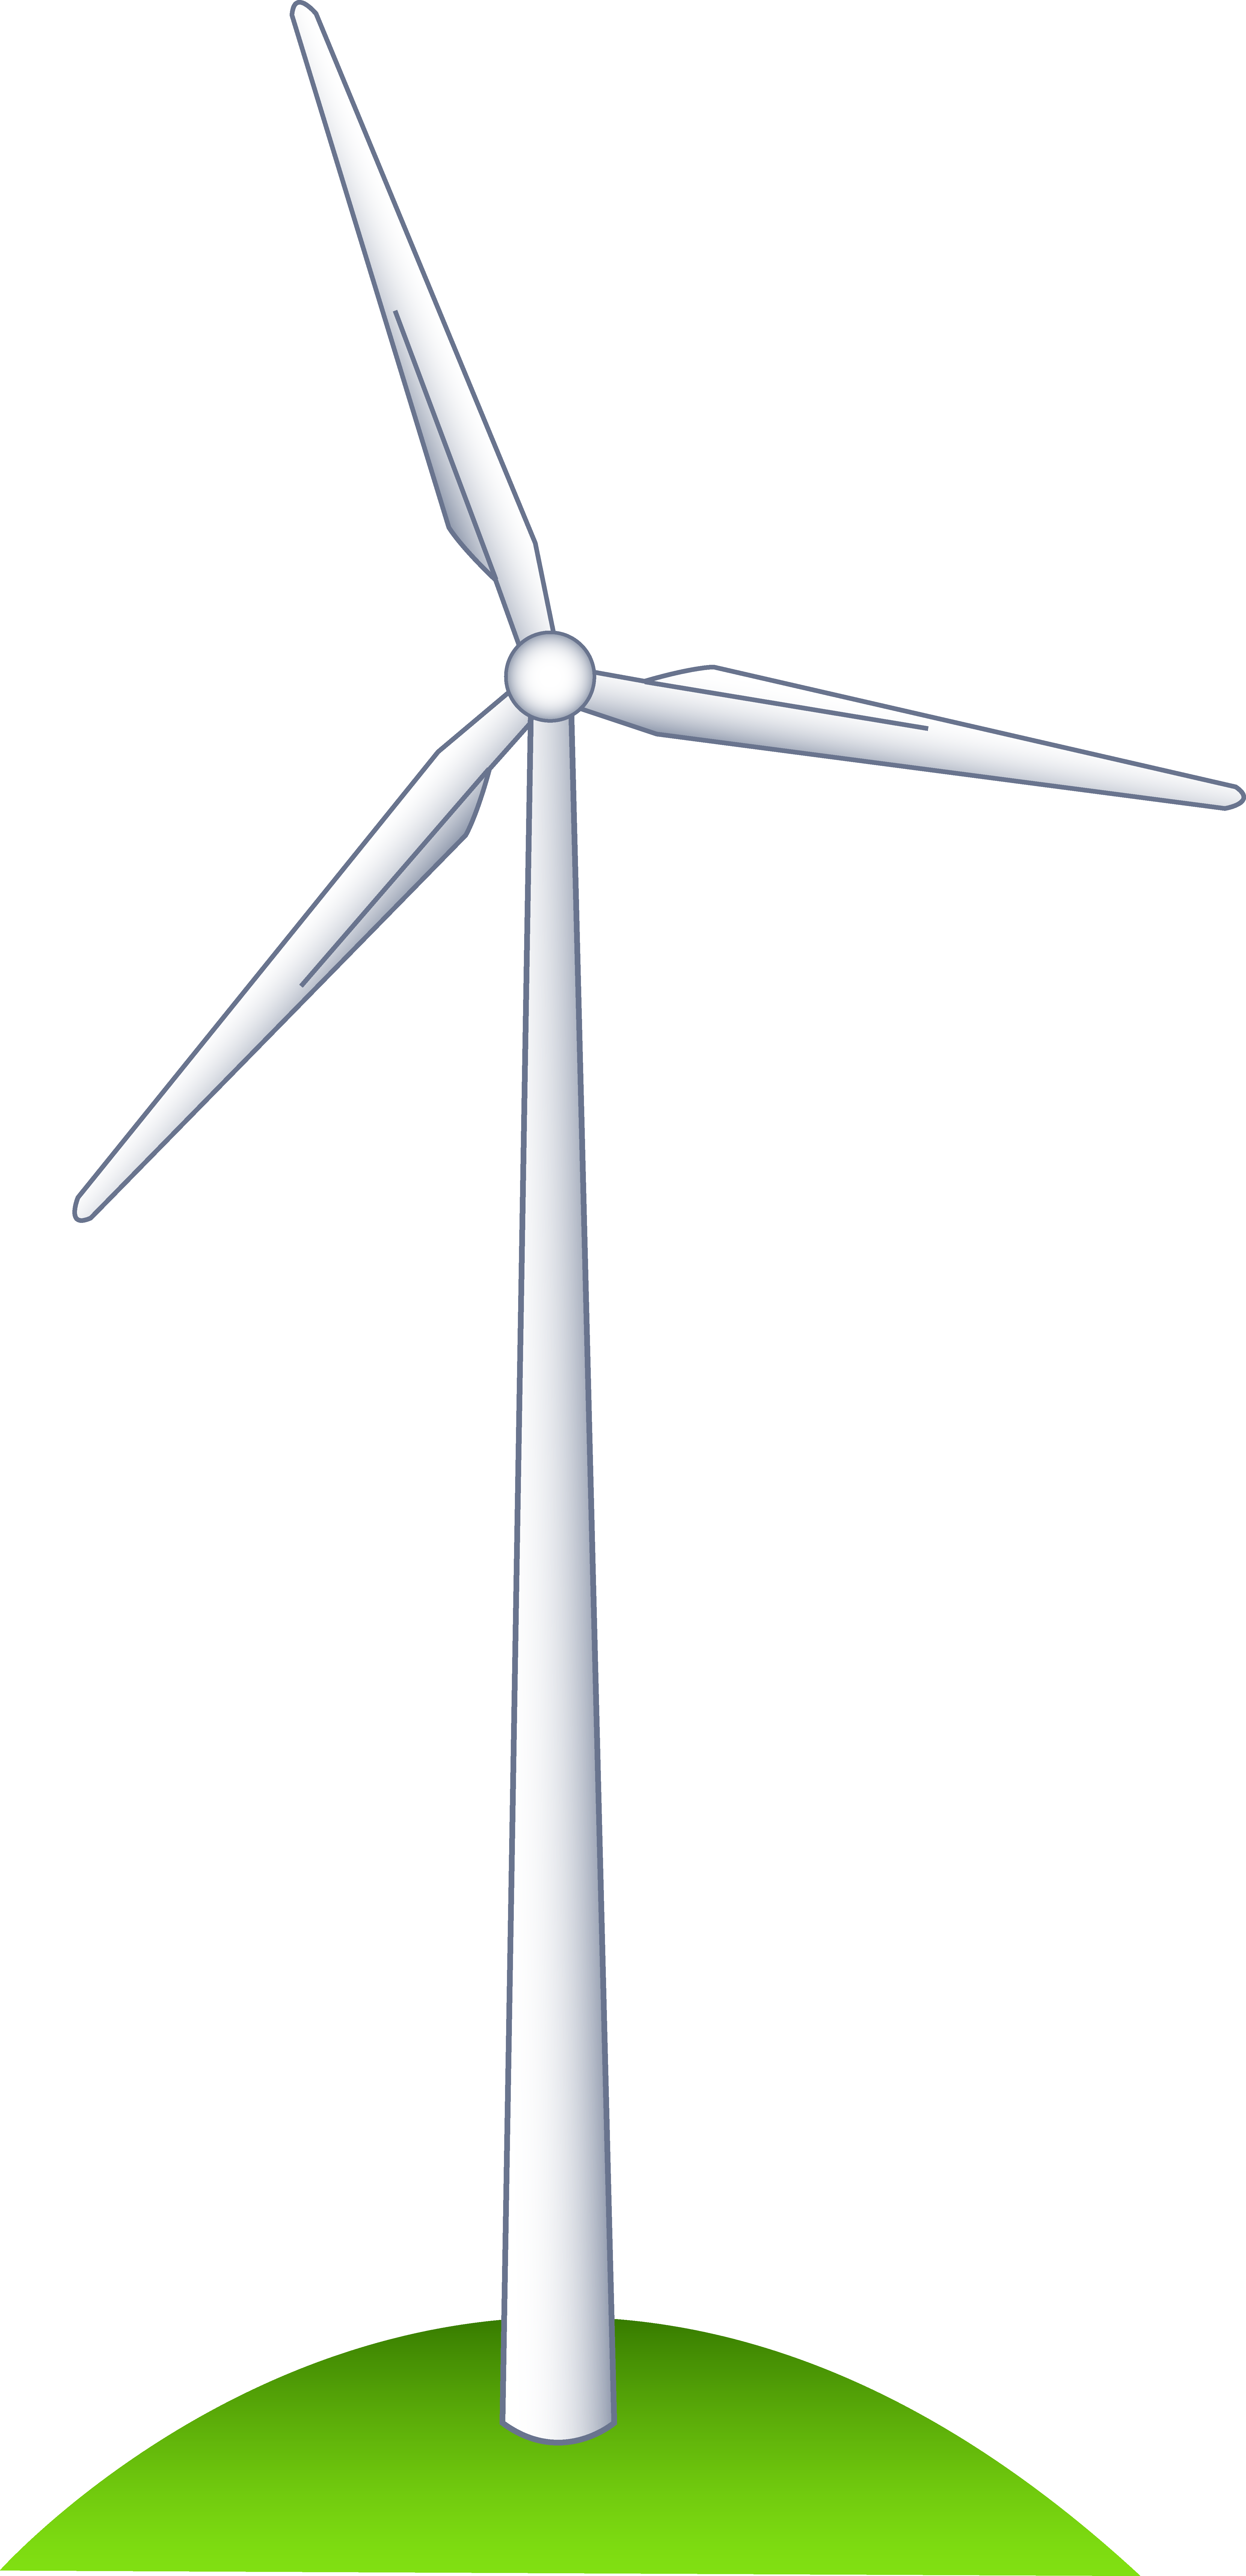 Wind turbine on a. Windy clipart drawing